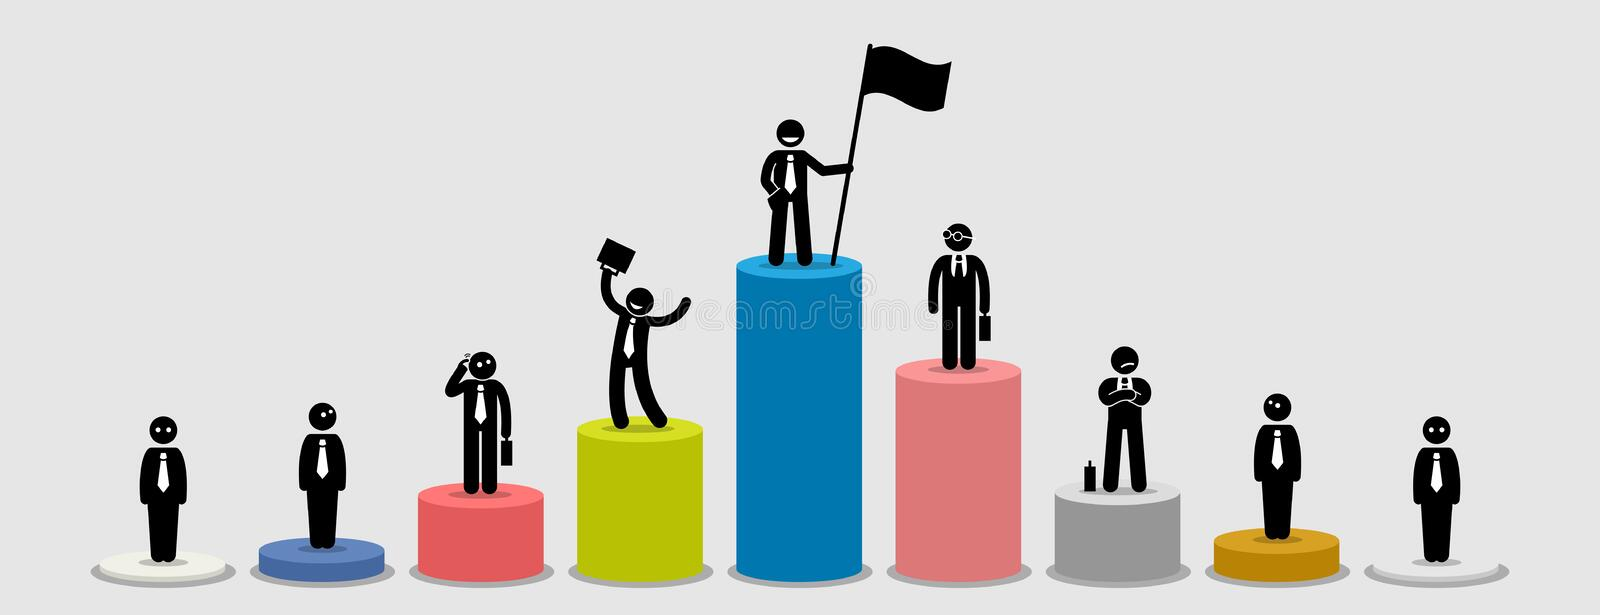 Many different businessman standing on bar charts comparing their financial status. royalty free illustration